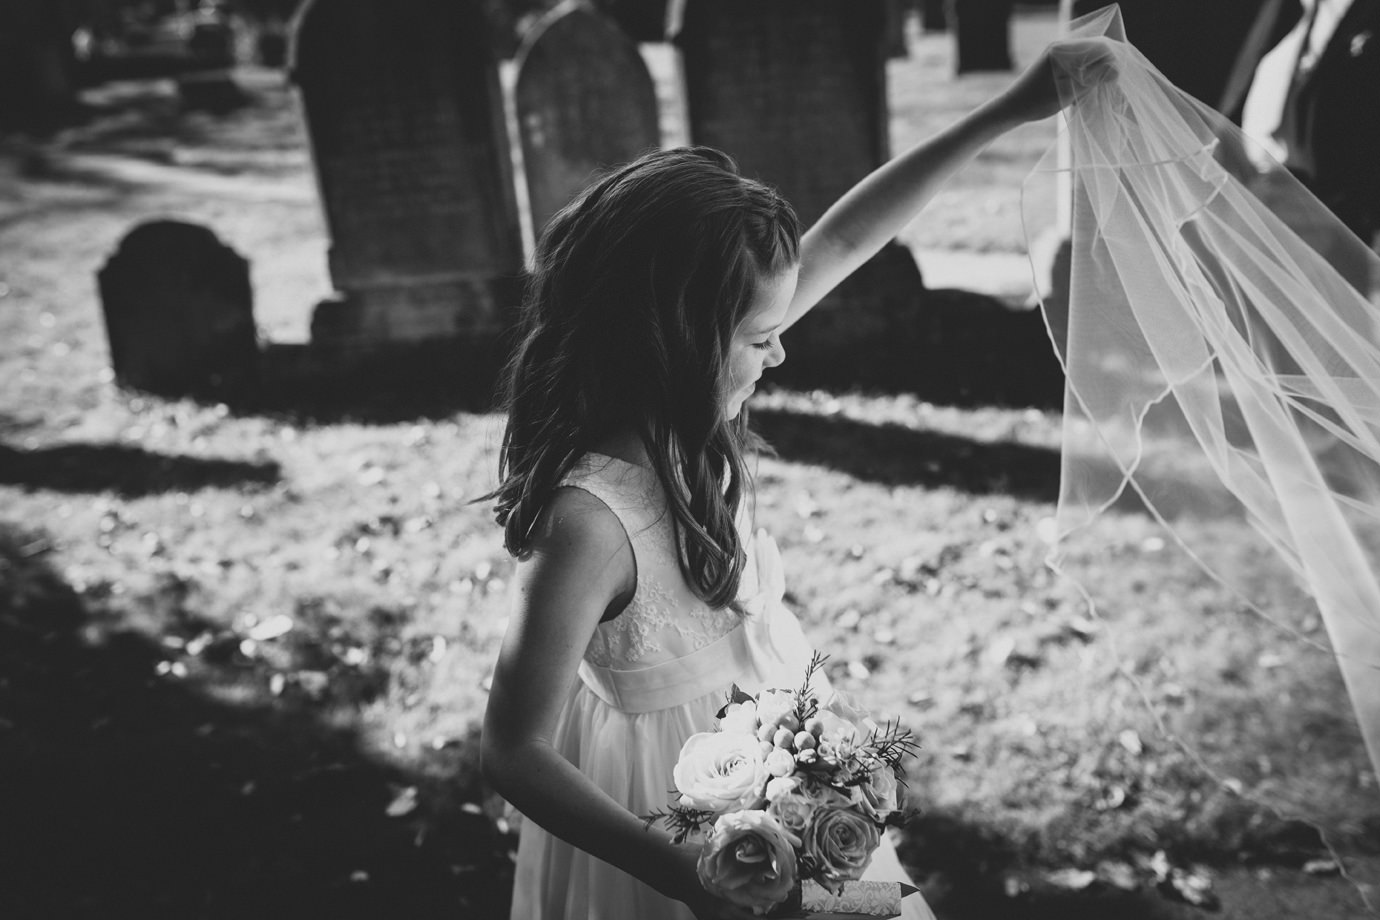 Flowergirl playing with the brides veil alternative wedding photography